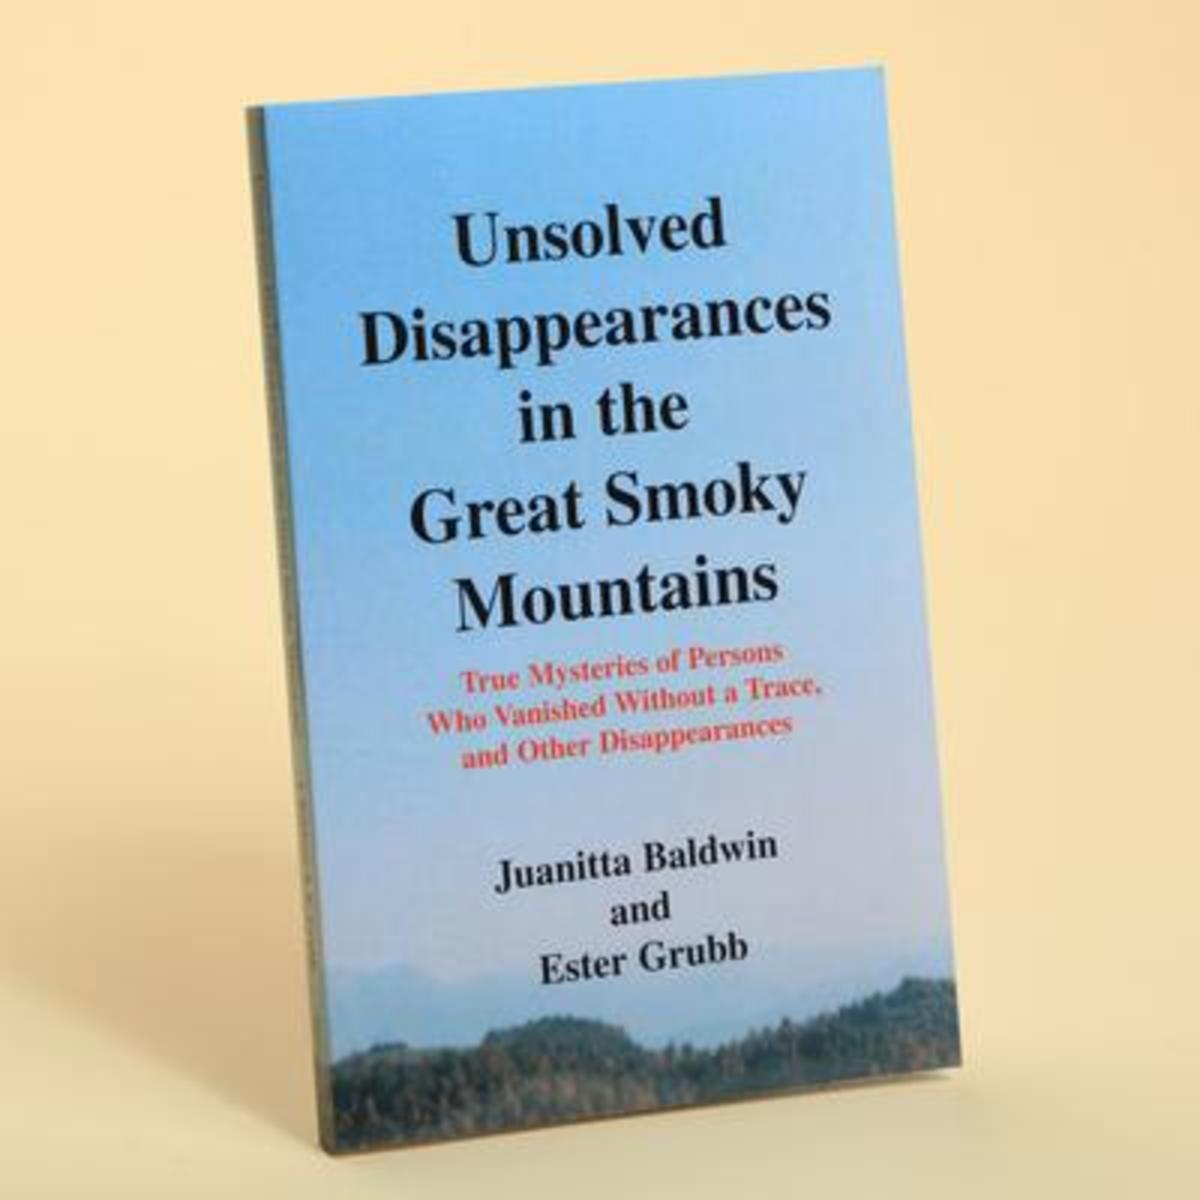 Unsolved Disappearances in the Great Smoky Mountains by Juanitta Baldwin and Ester Grubb